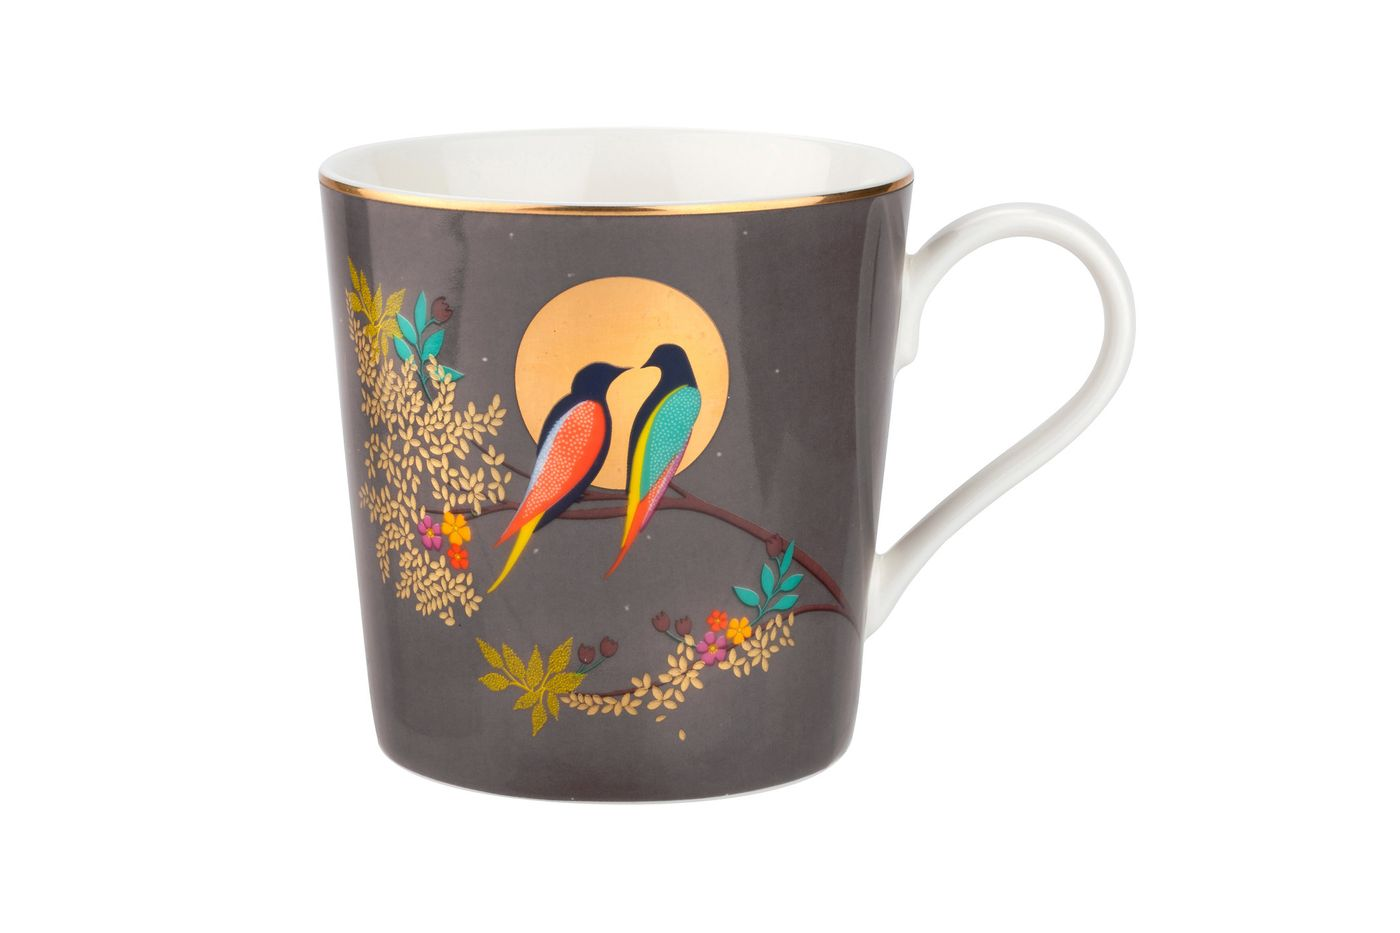 Sara Miller London for Portmeirion Chelsea Collection Mug Dark Grey 0.34l thumb 1